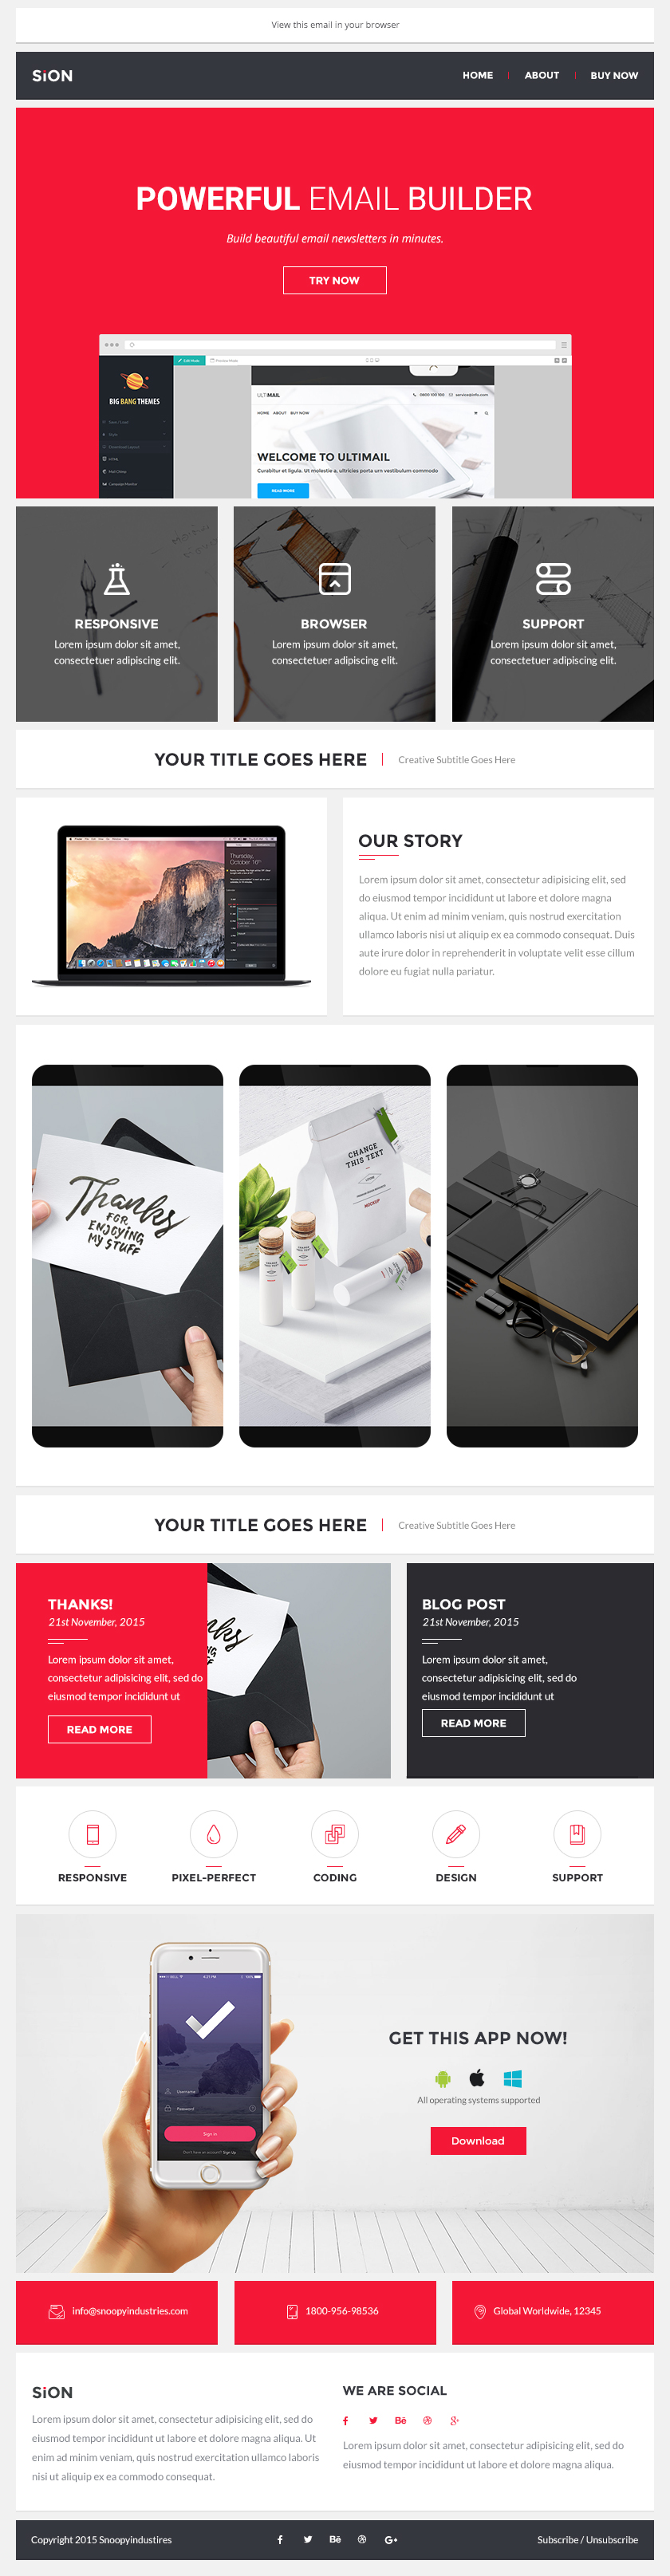 Sion - 200+ Modules Multipurpose Email + Builder Access by BigBangThemes